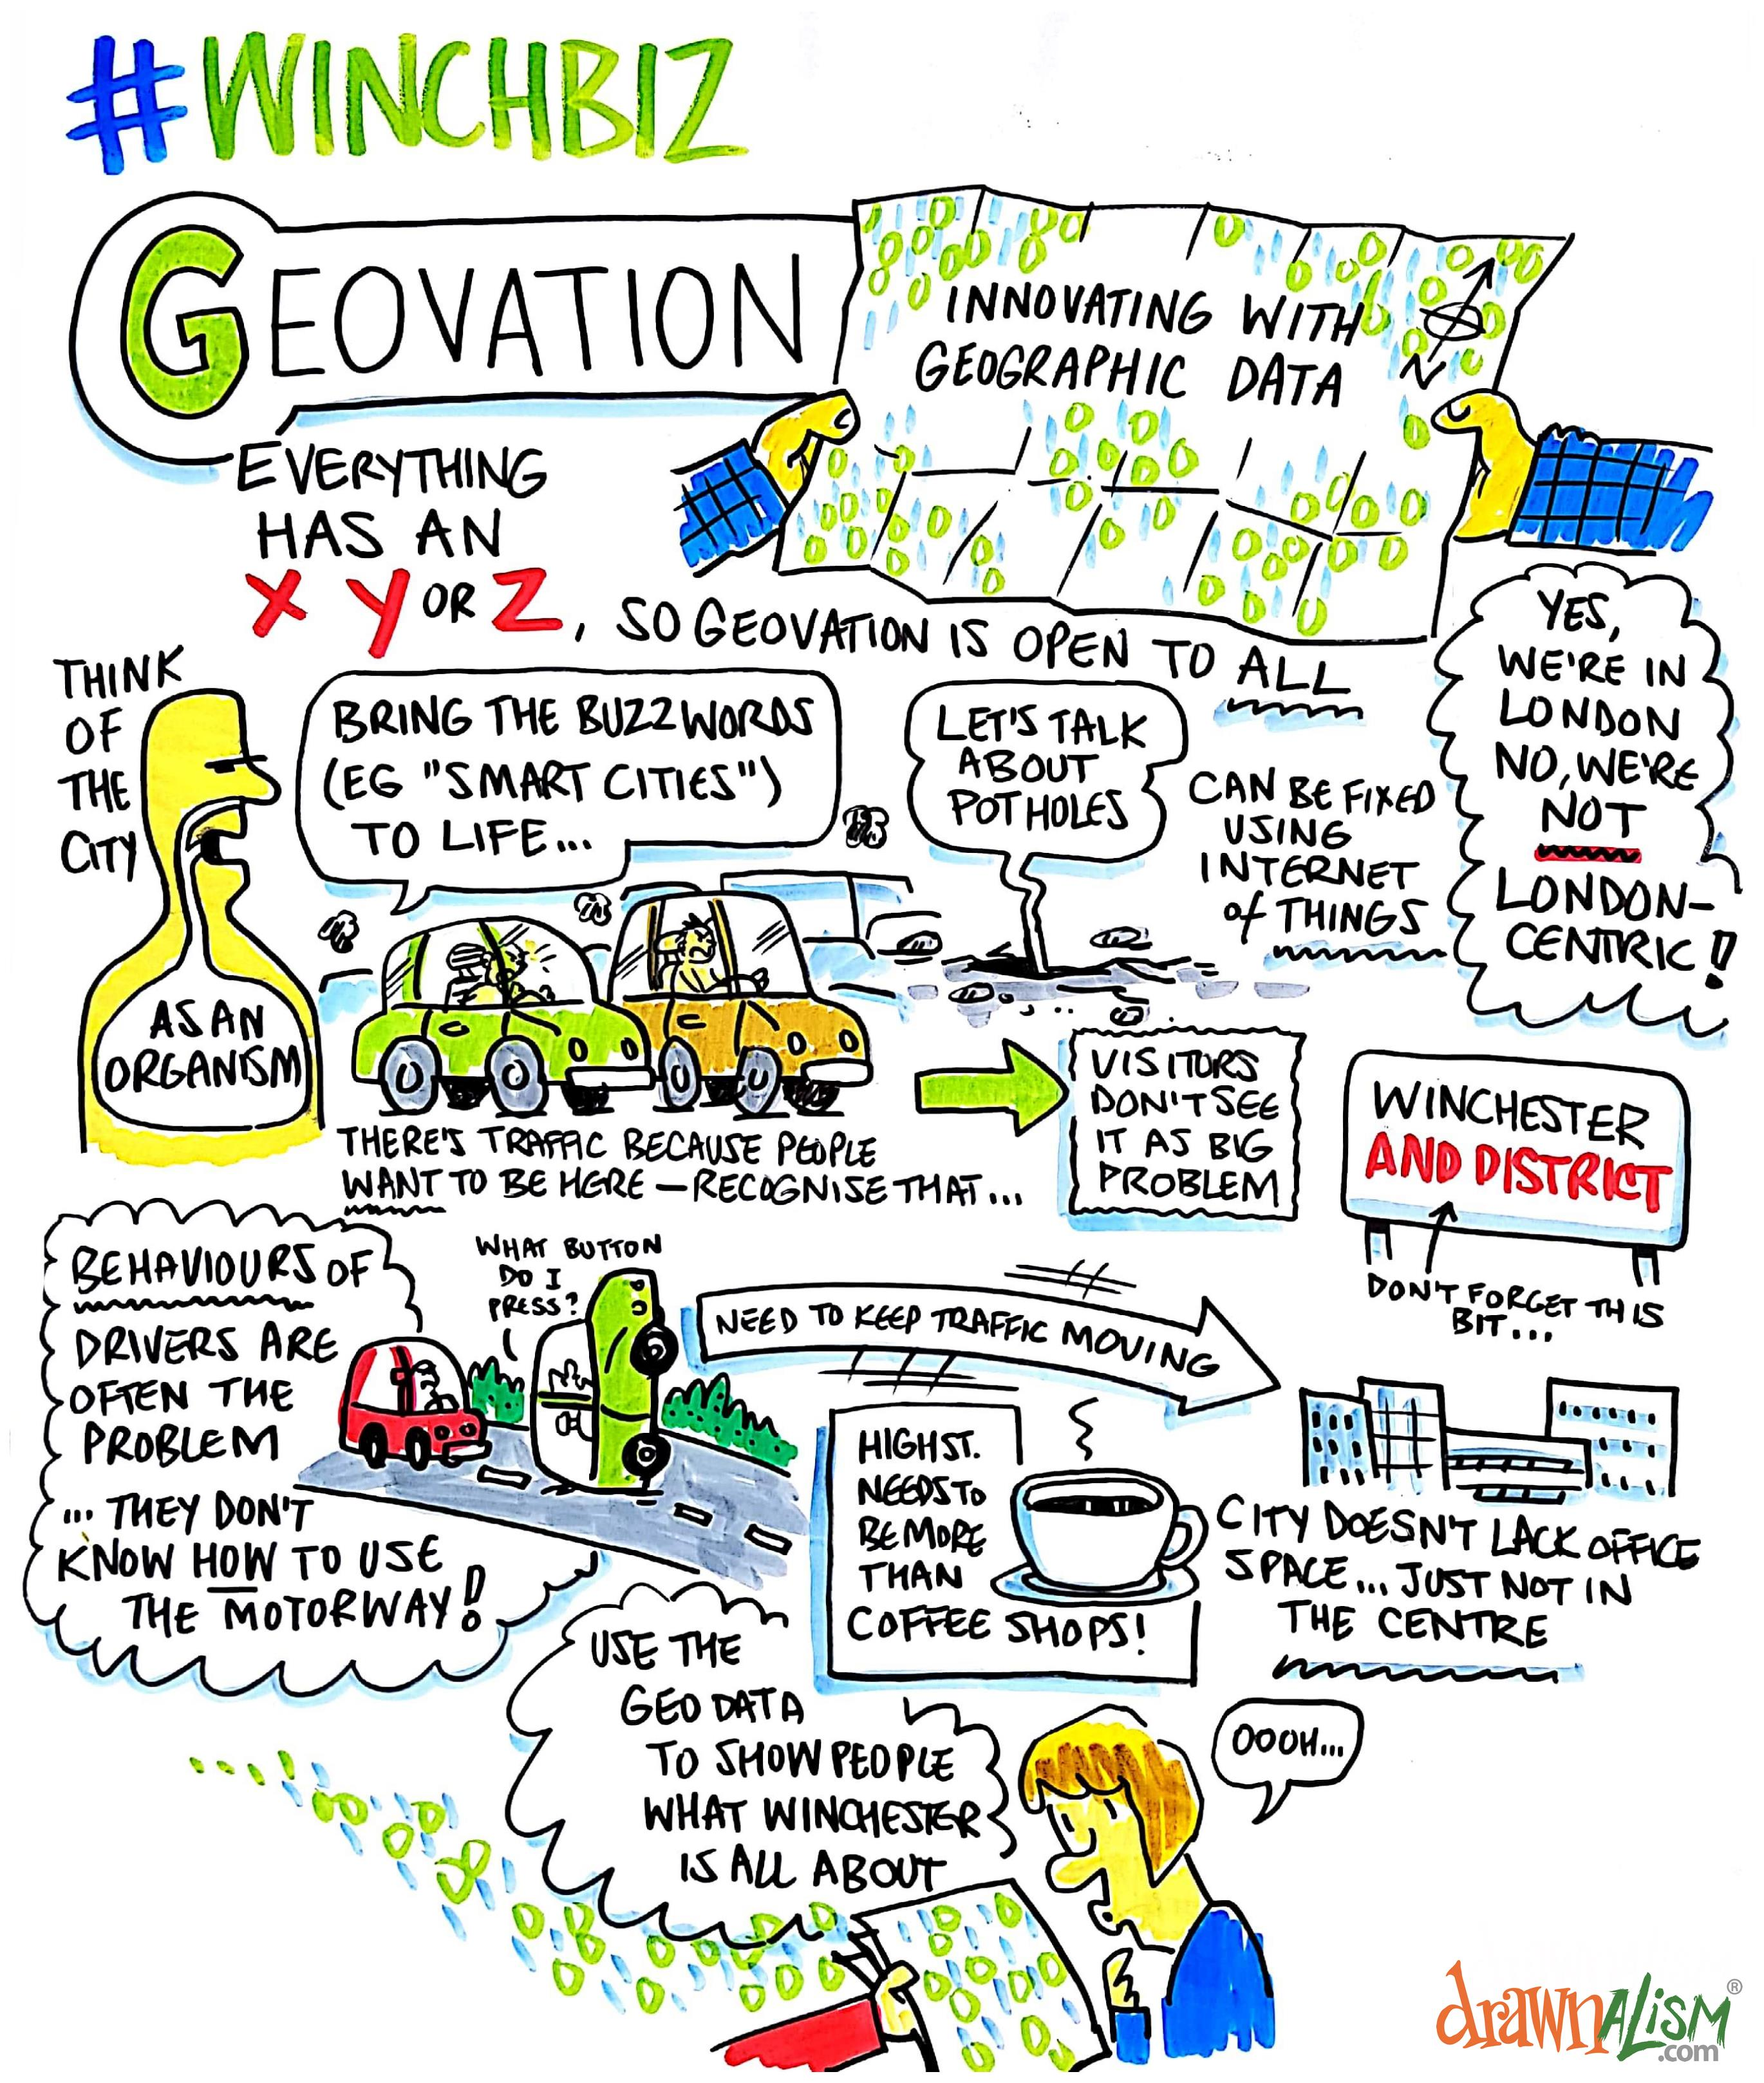 Geovation — what is it?